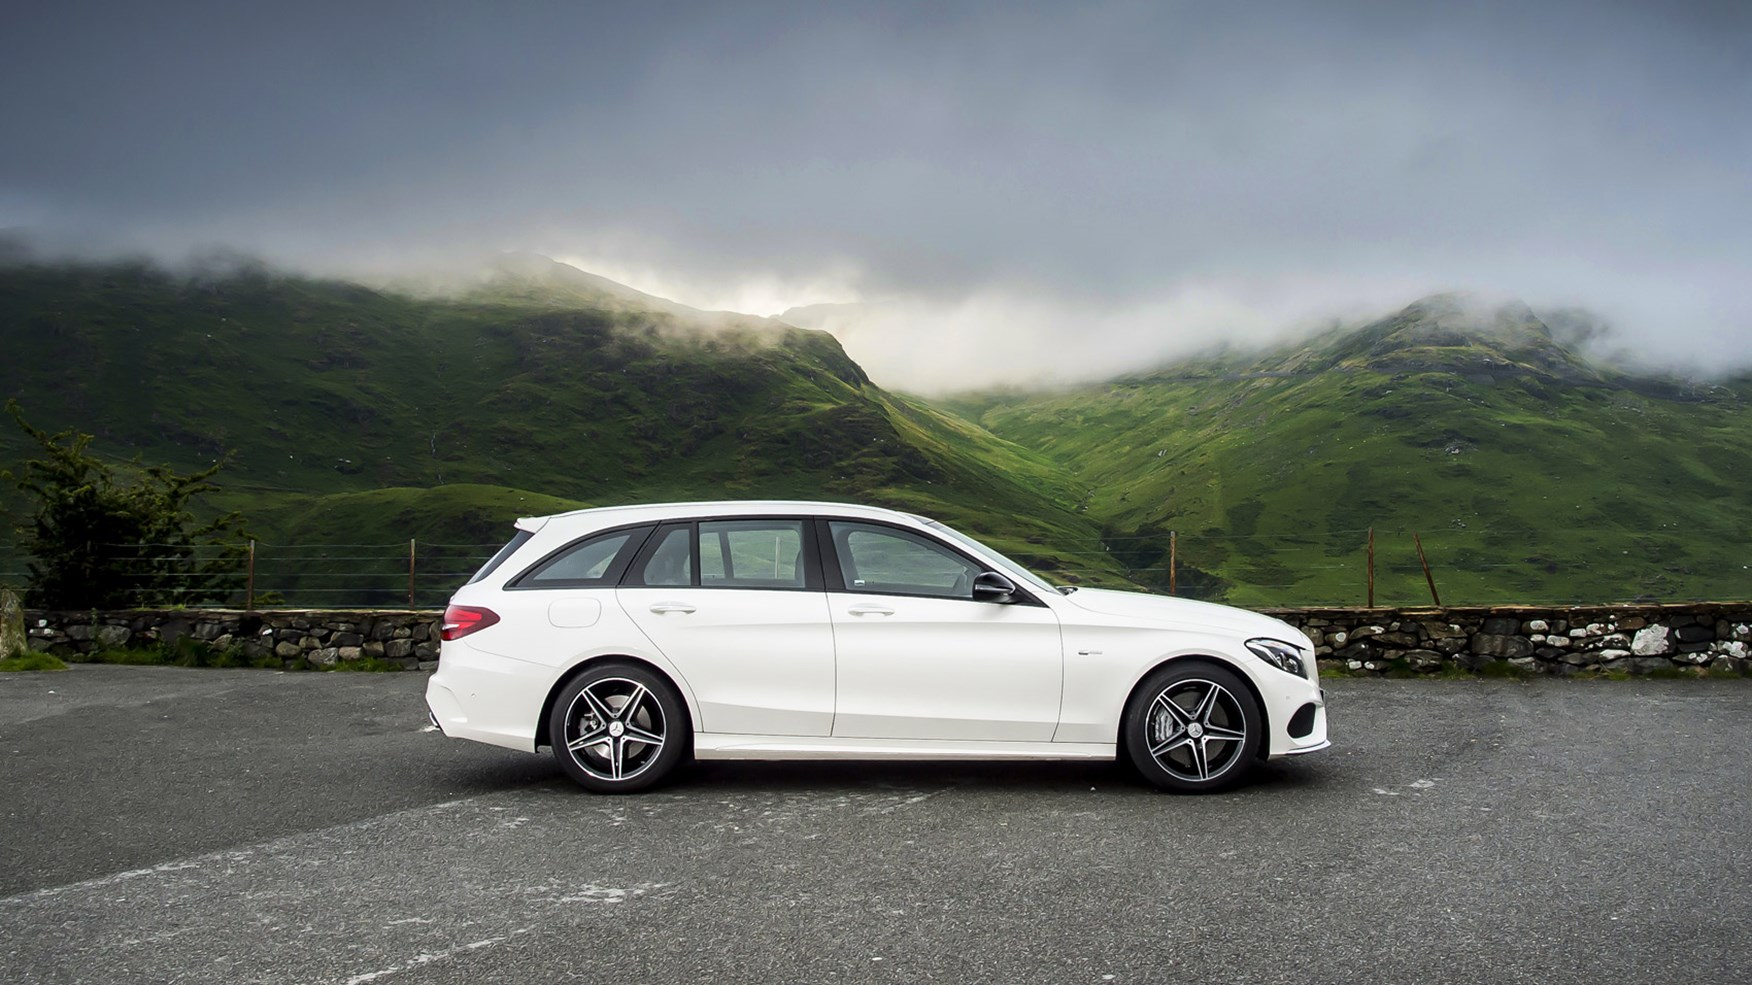 Mercedes Amg C43 4matic Estate 2016 Review By Car Magazine